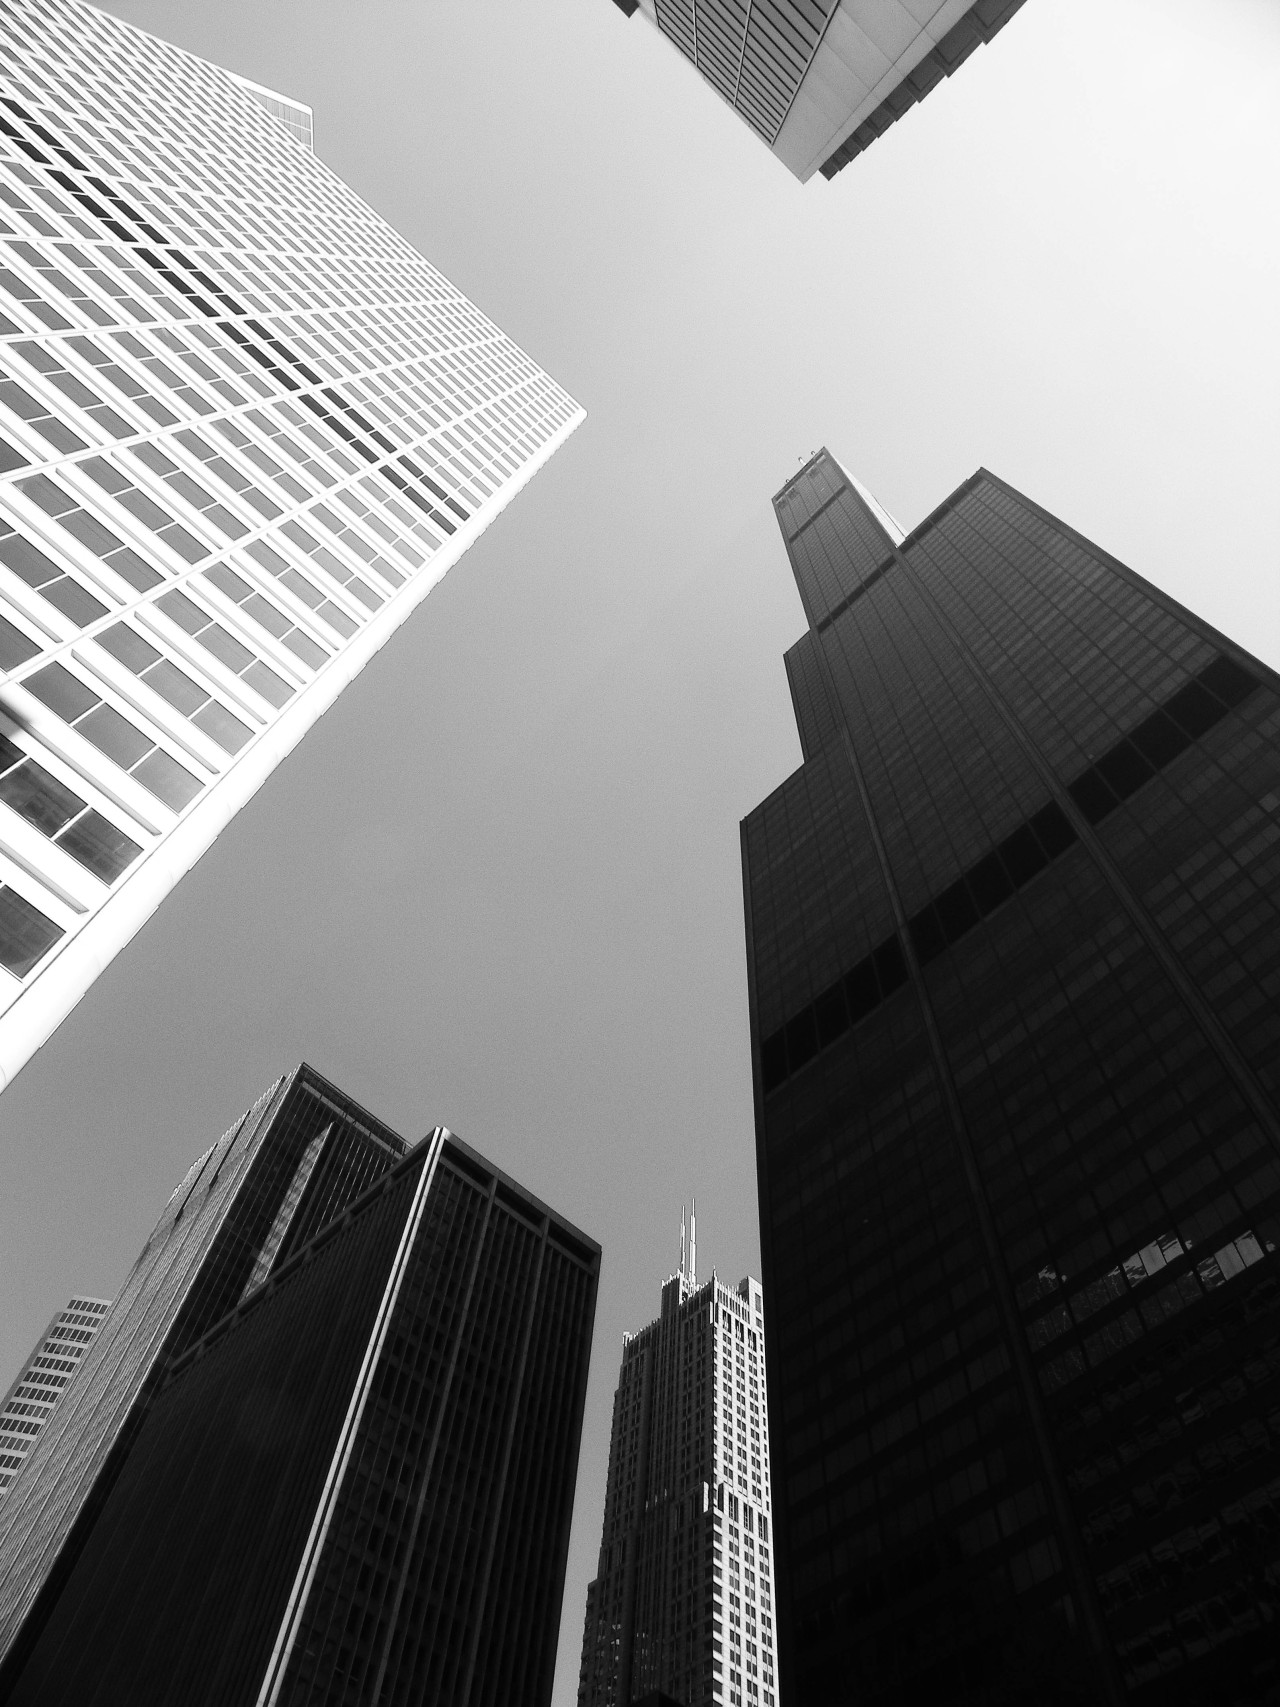 capturedbysam:  Willis Tower  #Skyscrapers